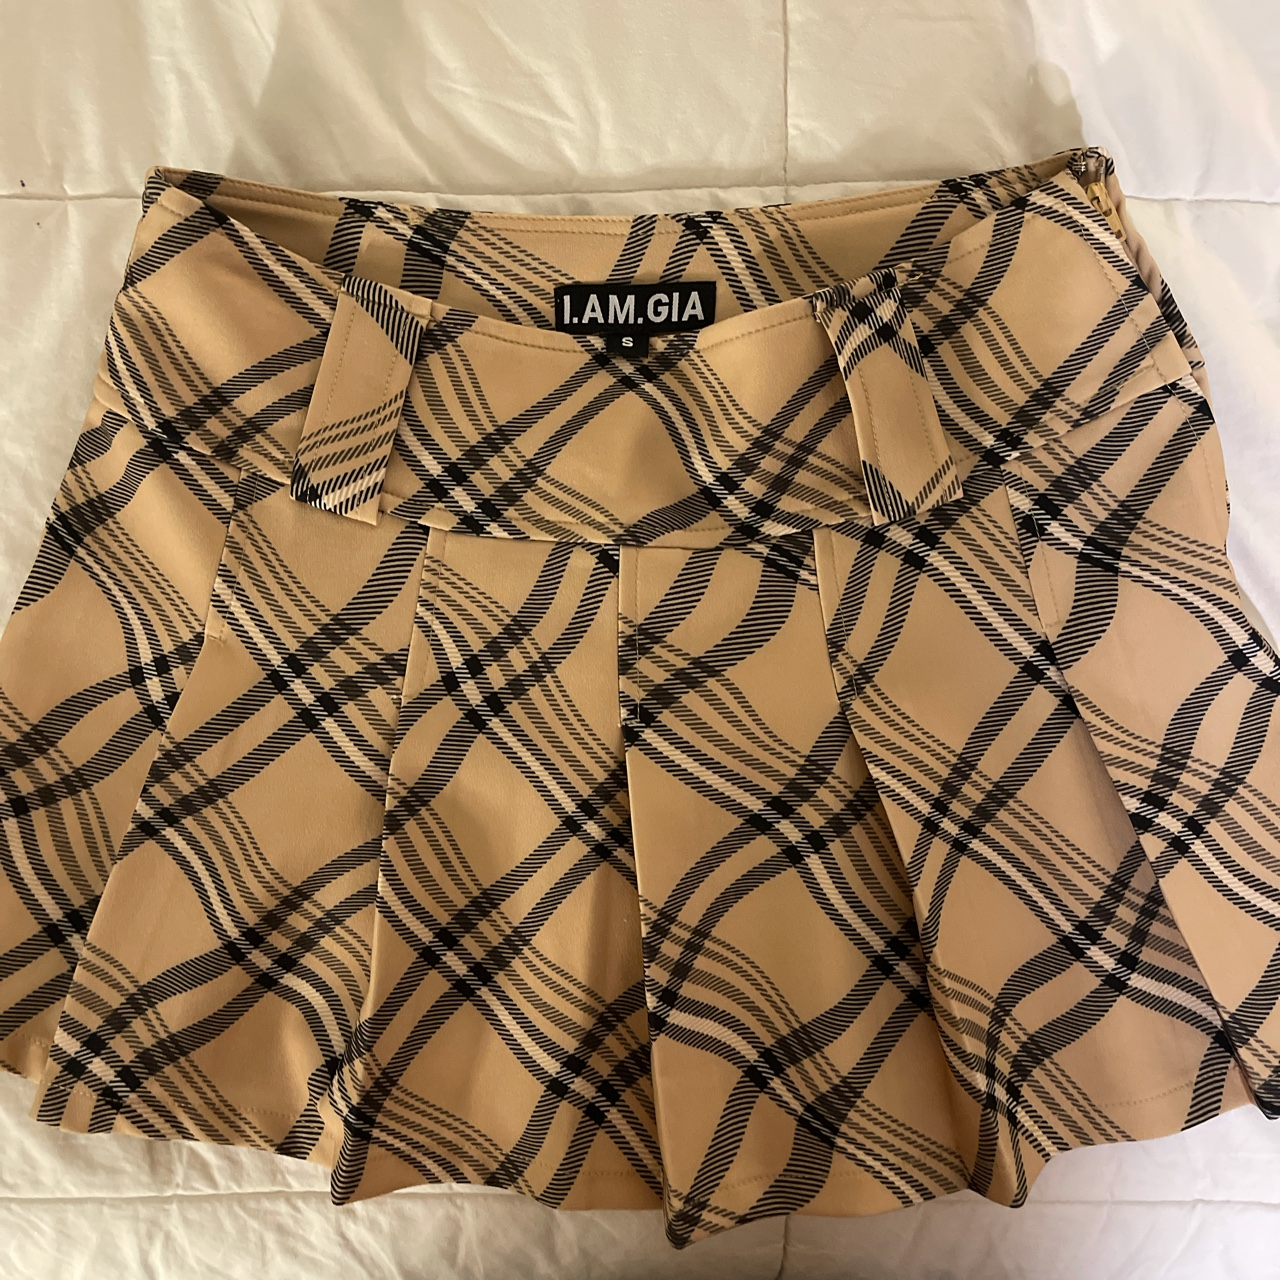 Product Image 1 - selling my favorite skirt, it's